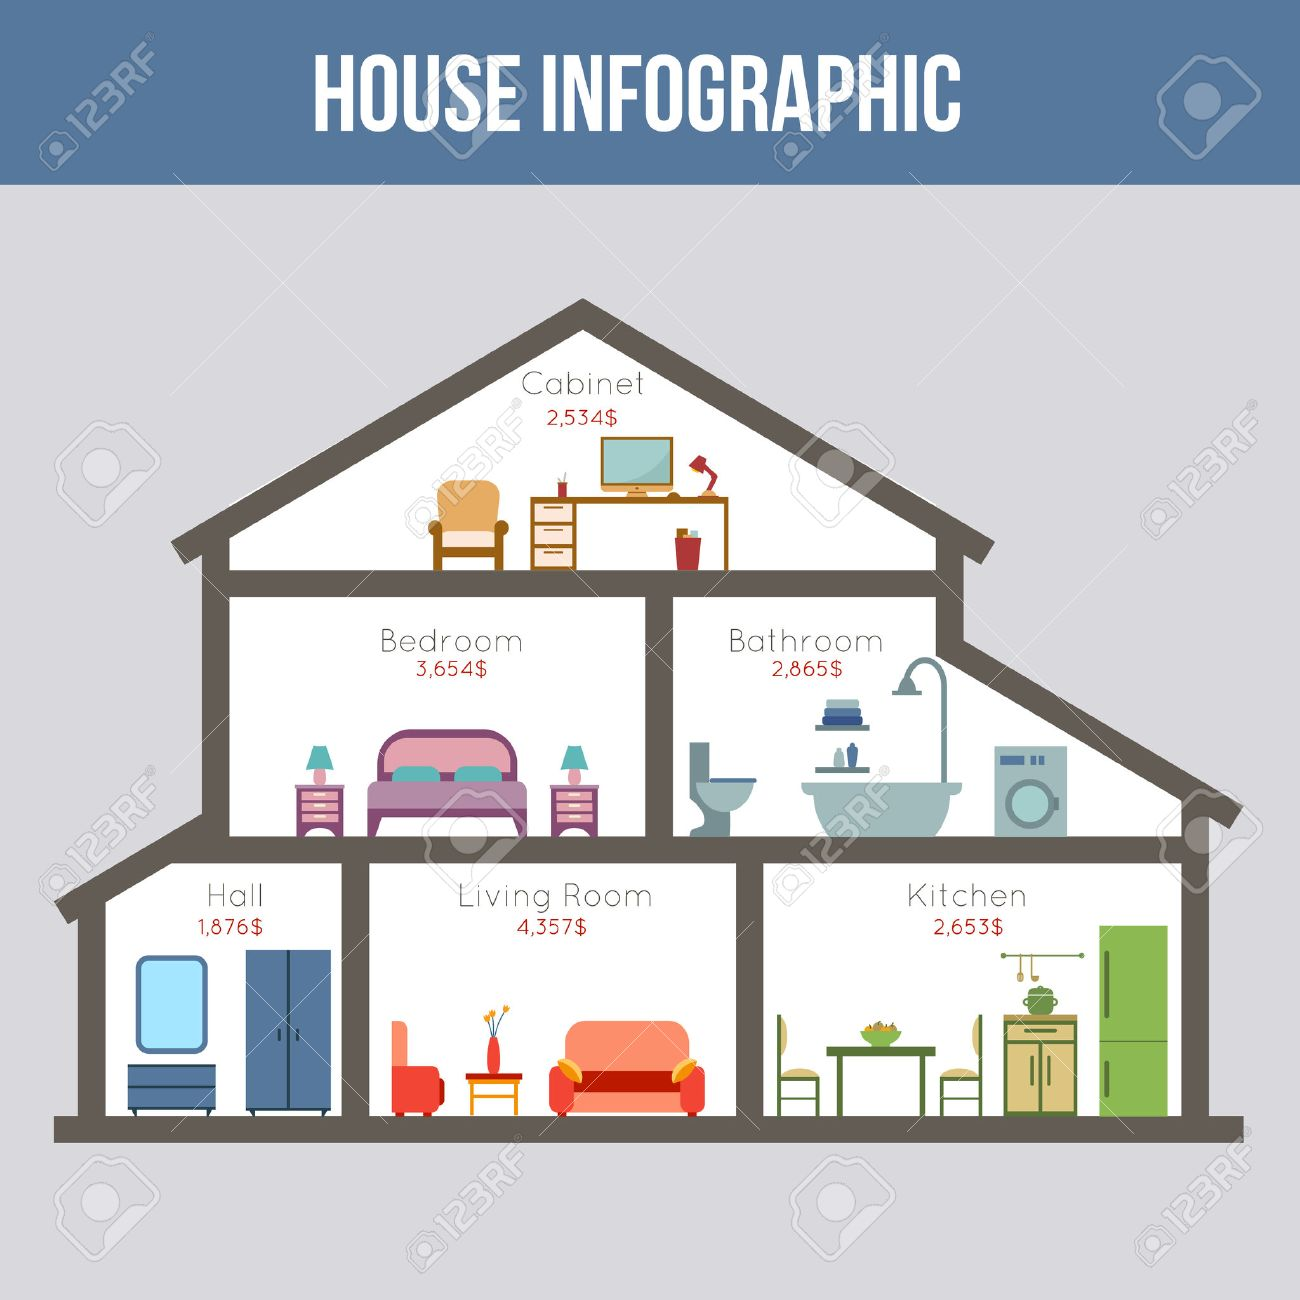 All rooms in the house rooms of homes vector art image illustration - House Infographic Rooms With Furniture With Statistic Flat Style Vector Illustration Stock Vector